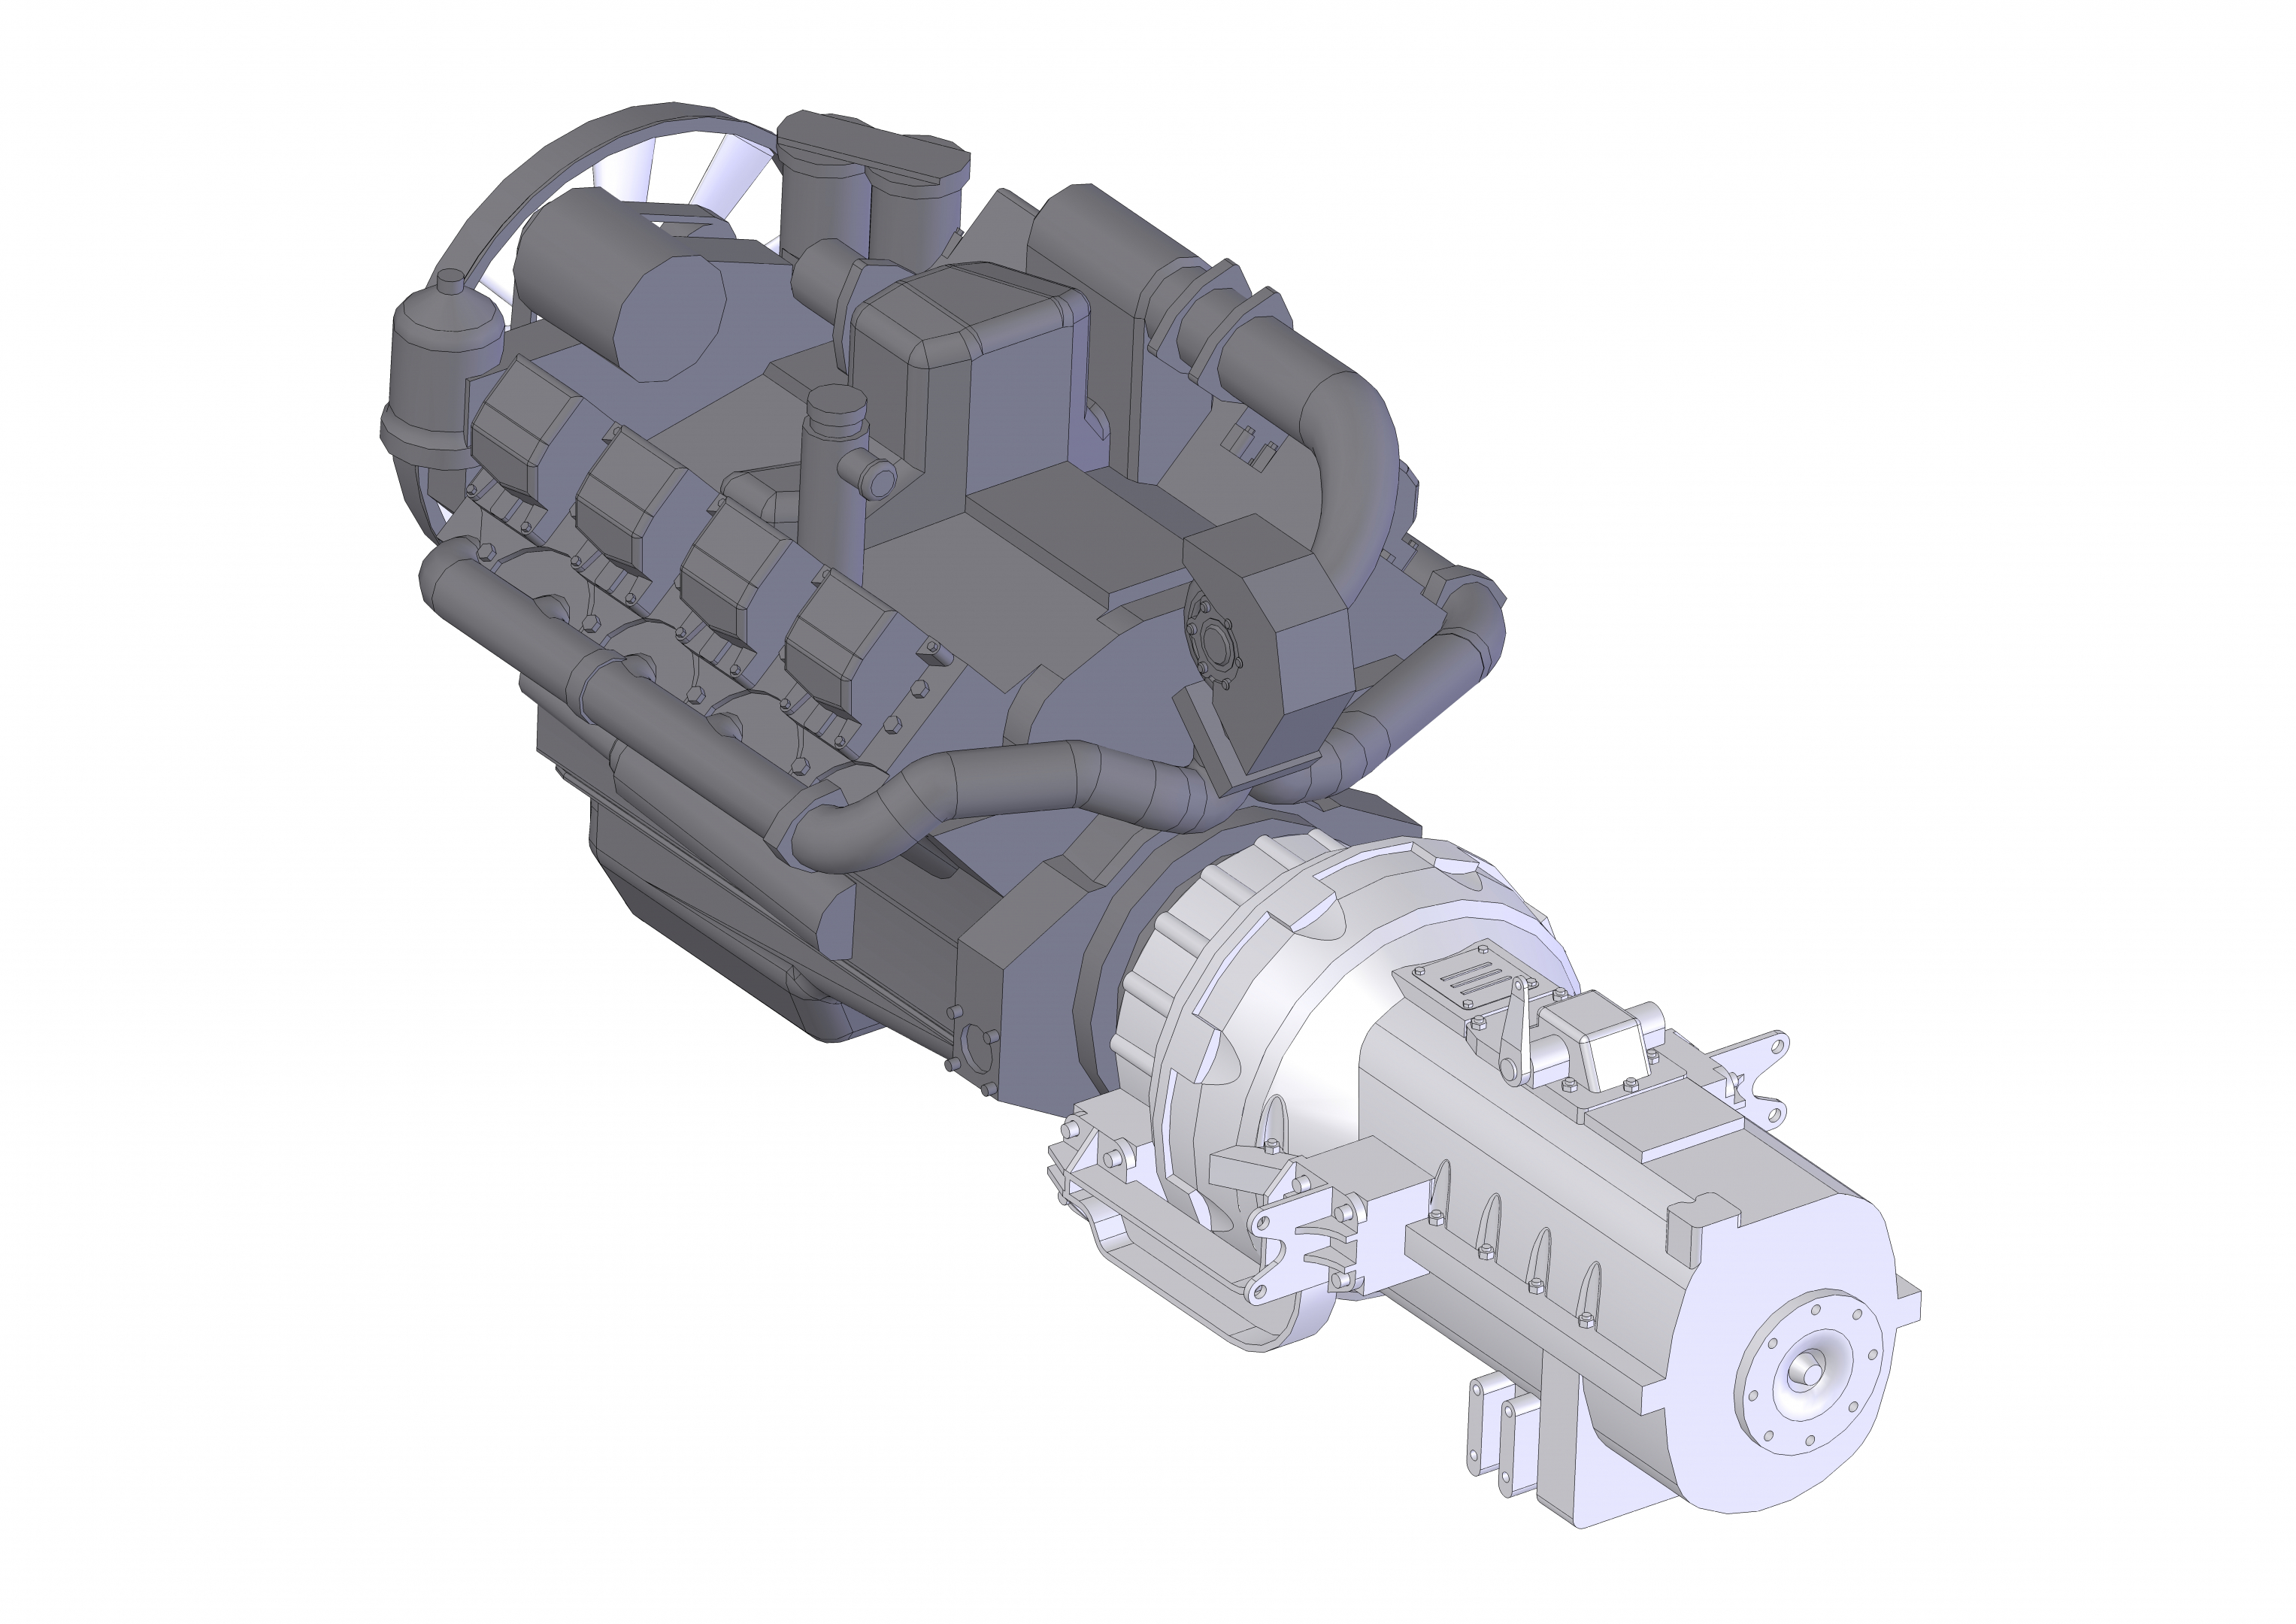 YaMZ-846 in SolidWorks Other image